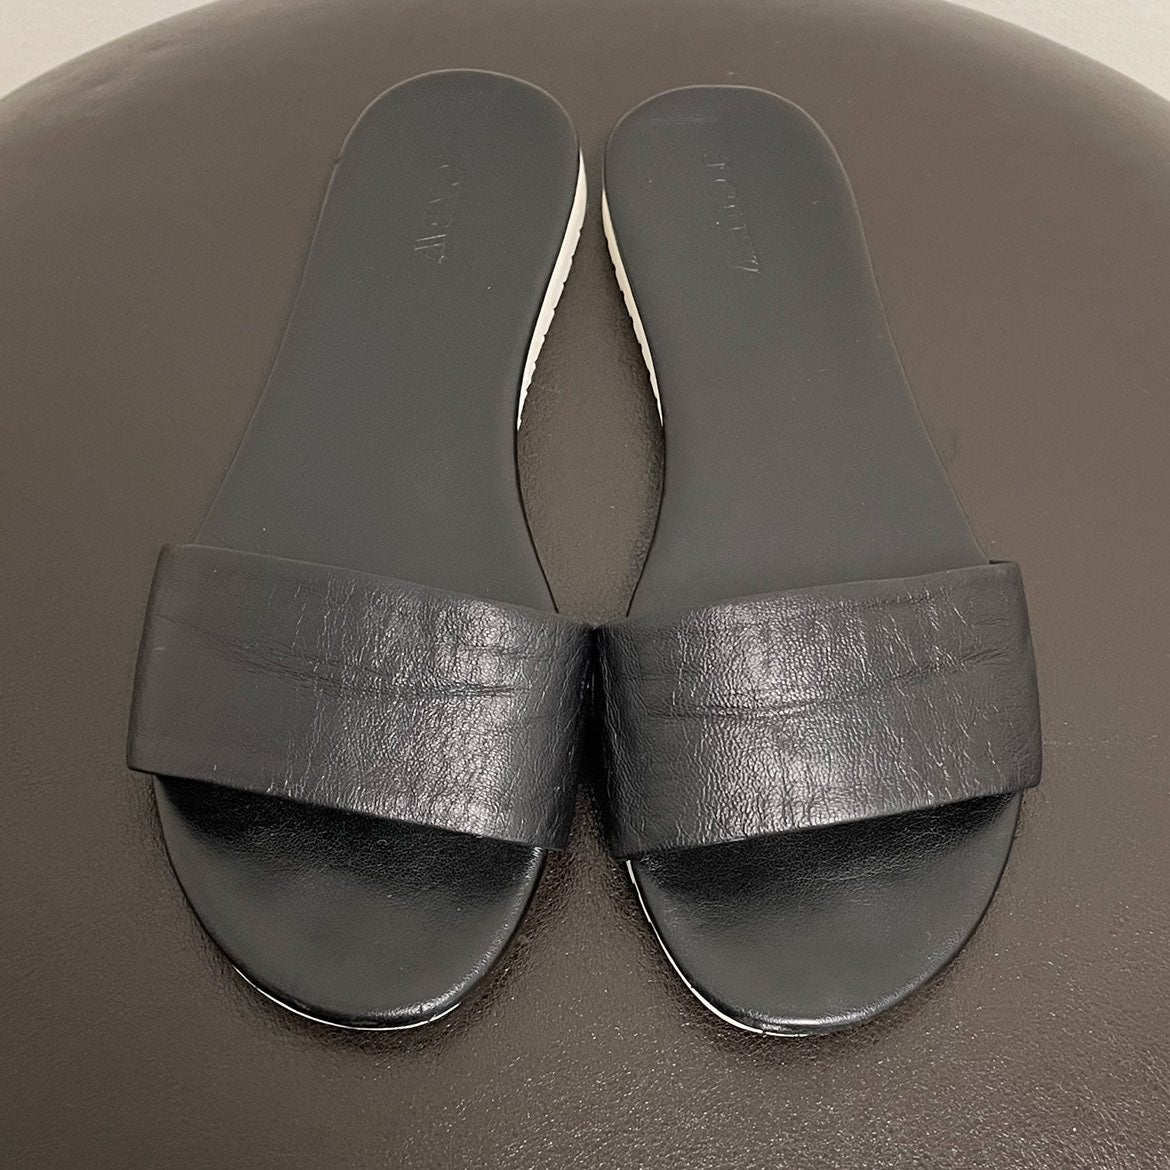 J Crew Leather Abbot Slides Black 7